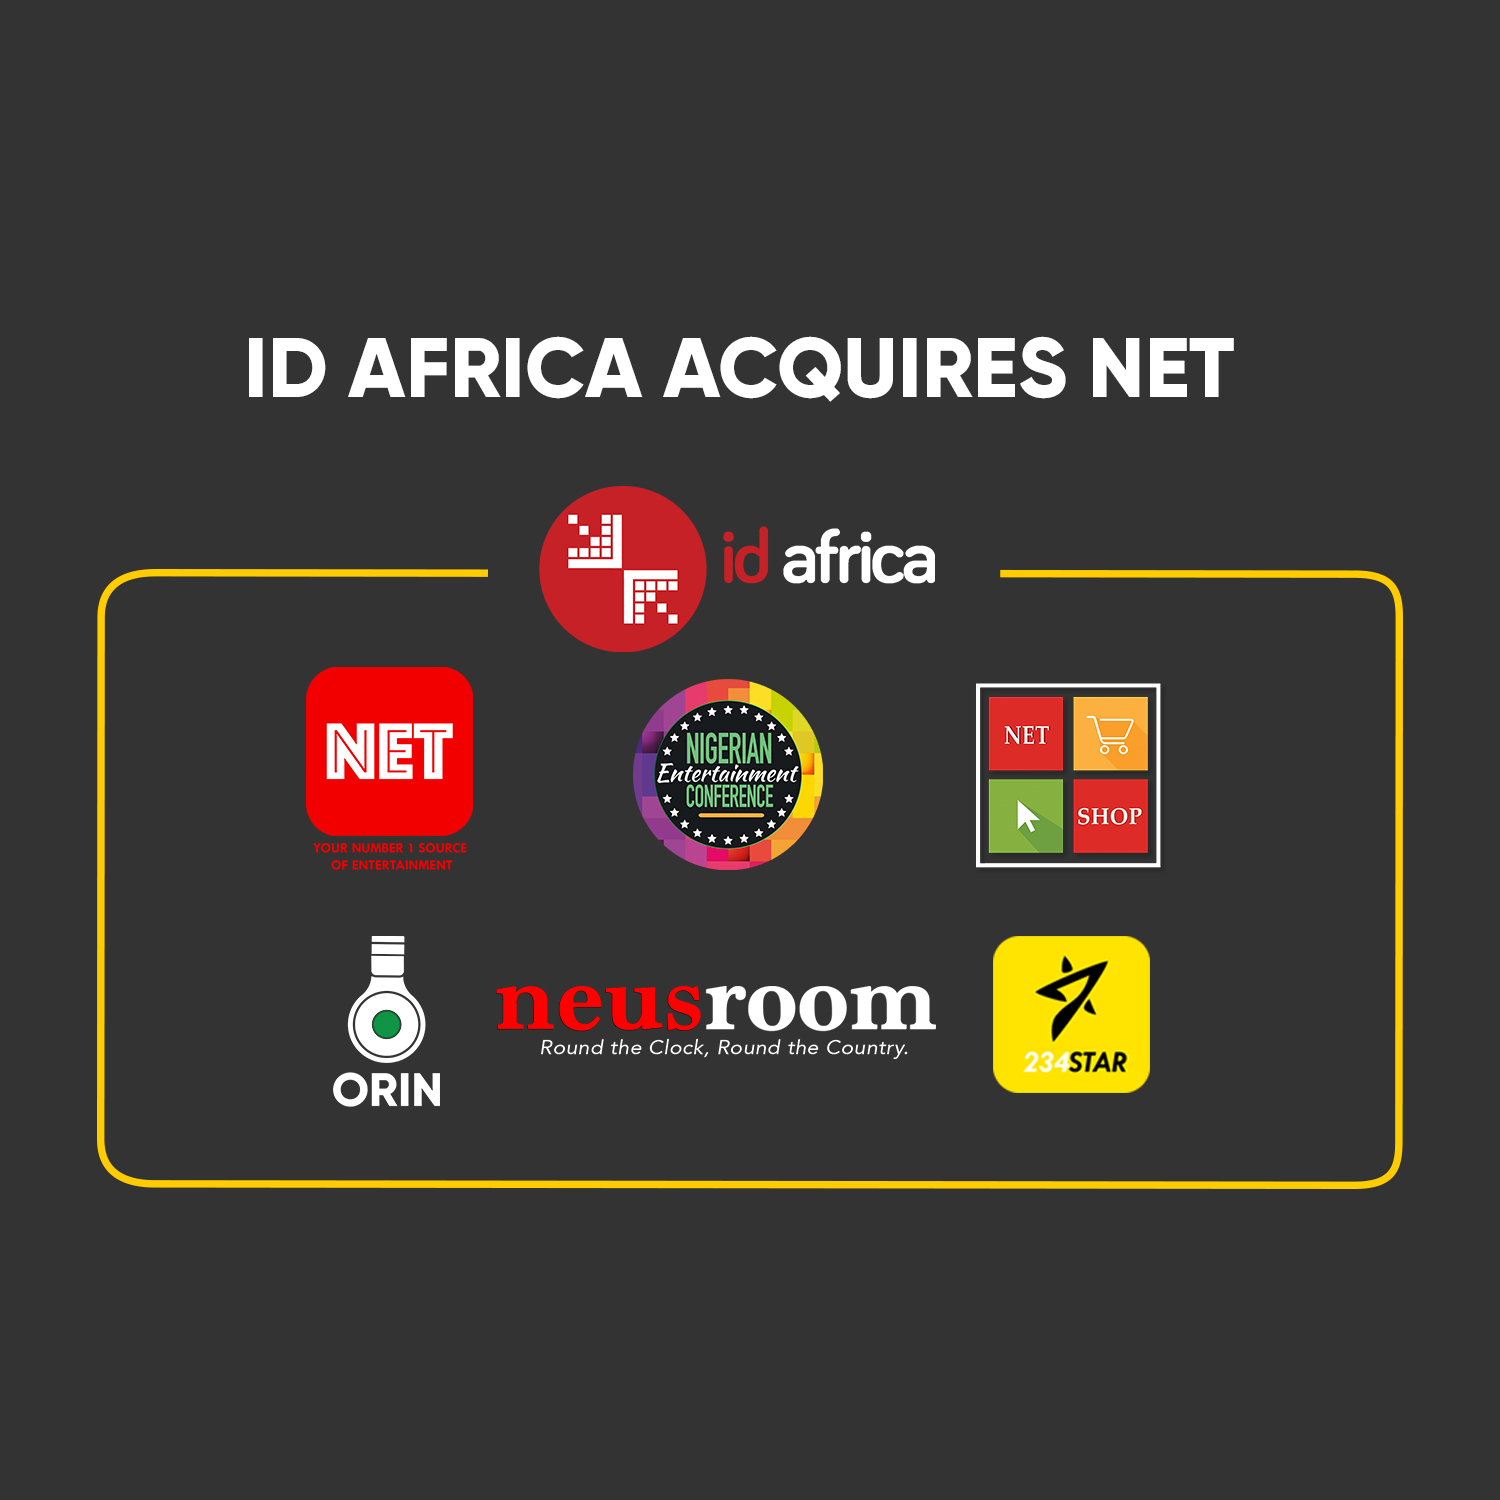 ID Africa Acquires TheNETng To Form Marketing, Media and Technology Powerhouse